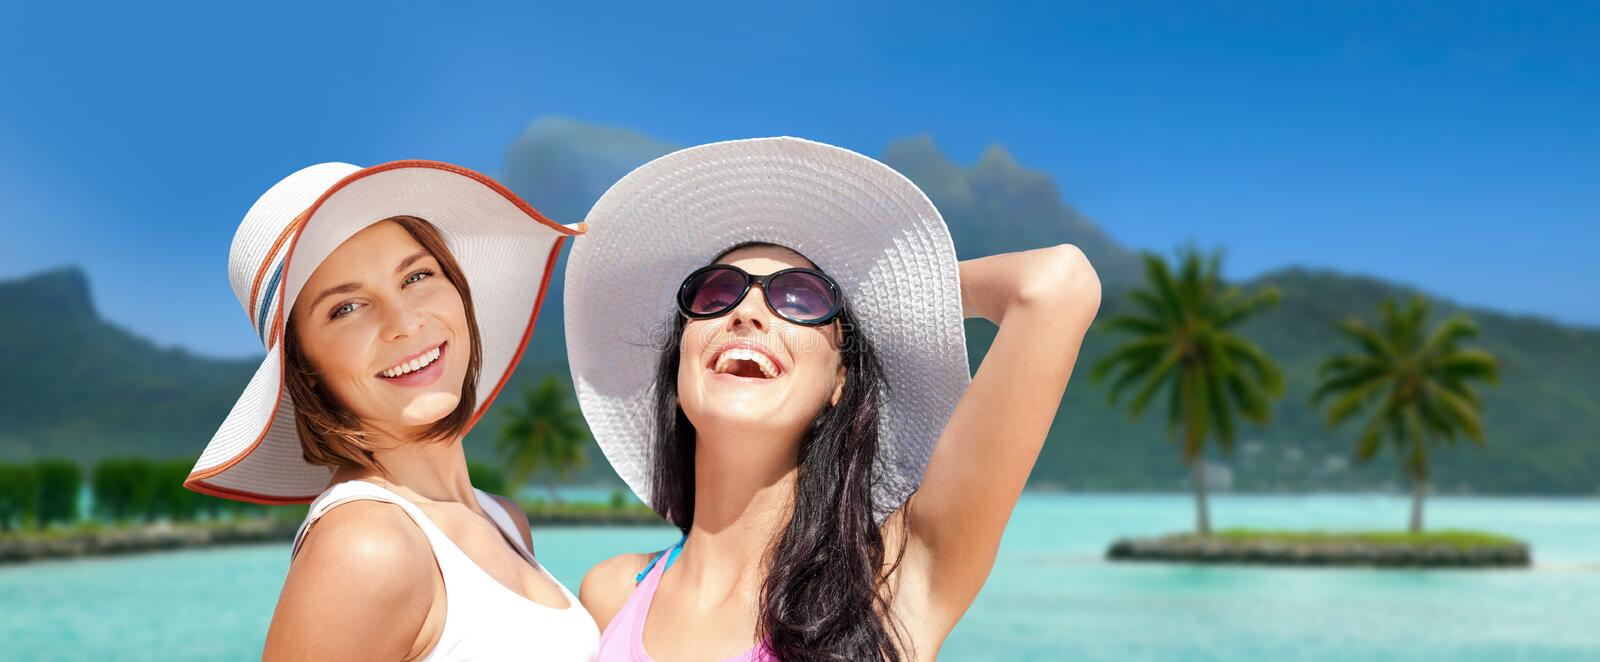 Smiling young women in hats on bora bora beach stock images